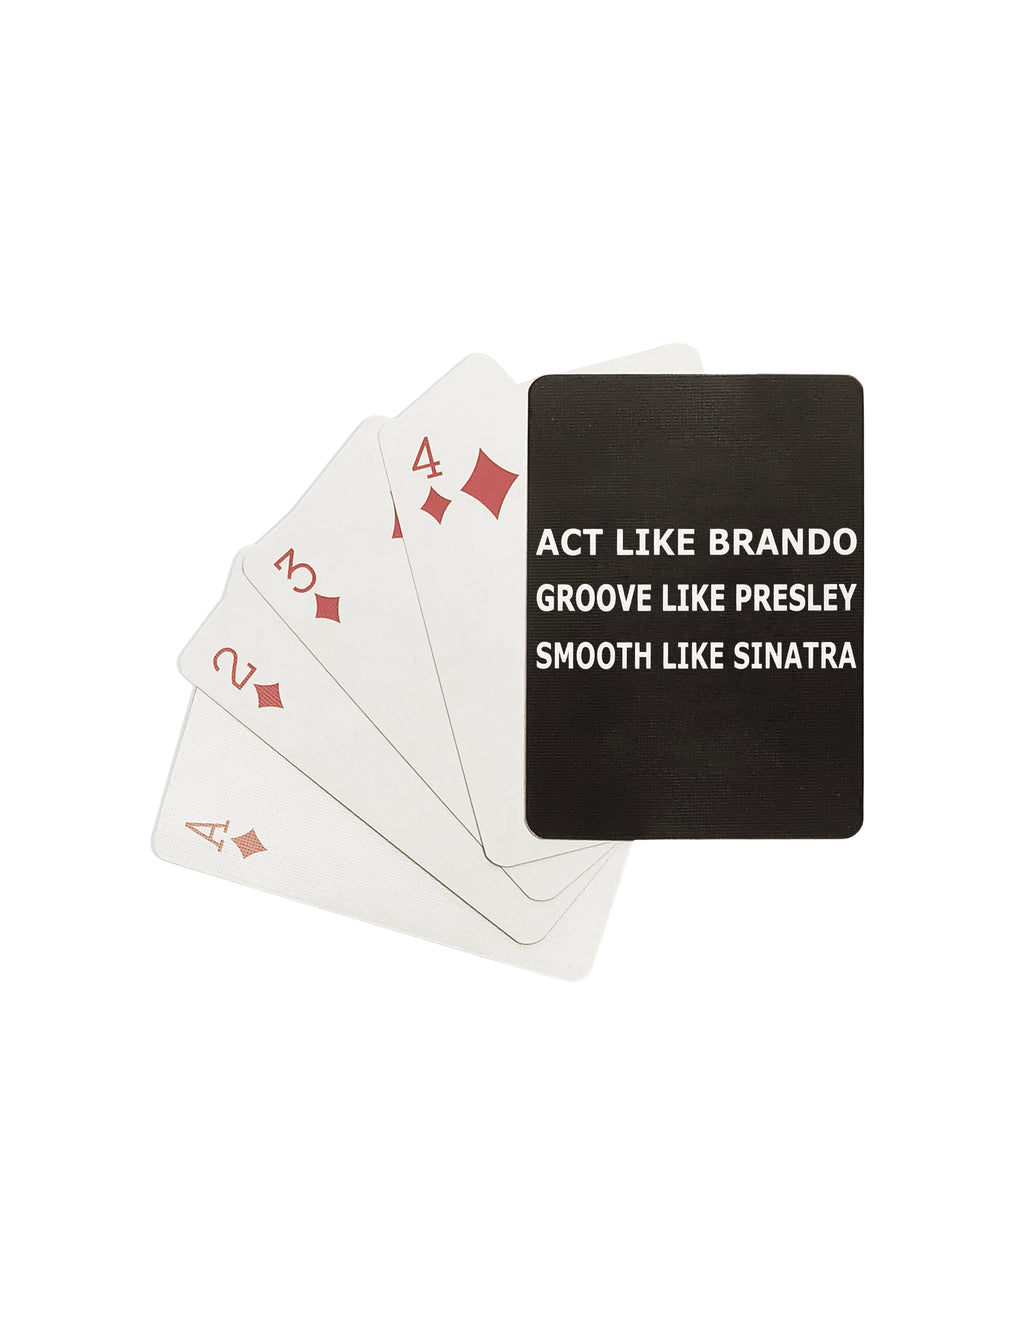 PLAYING CARDS - Act Like Brando